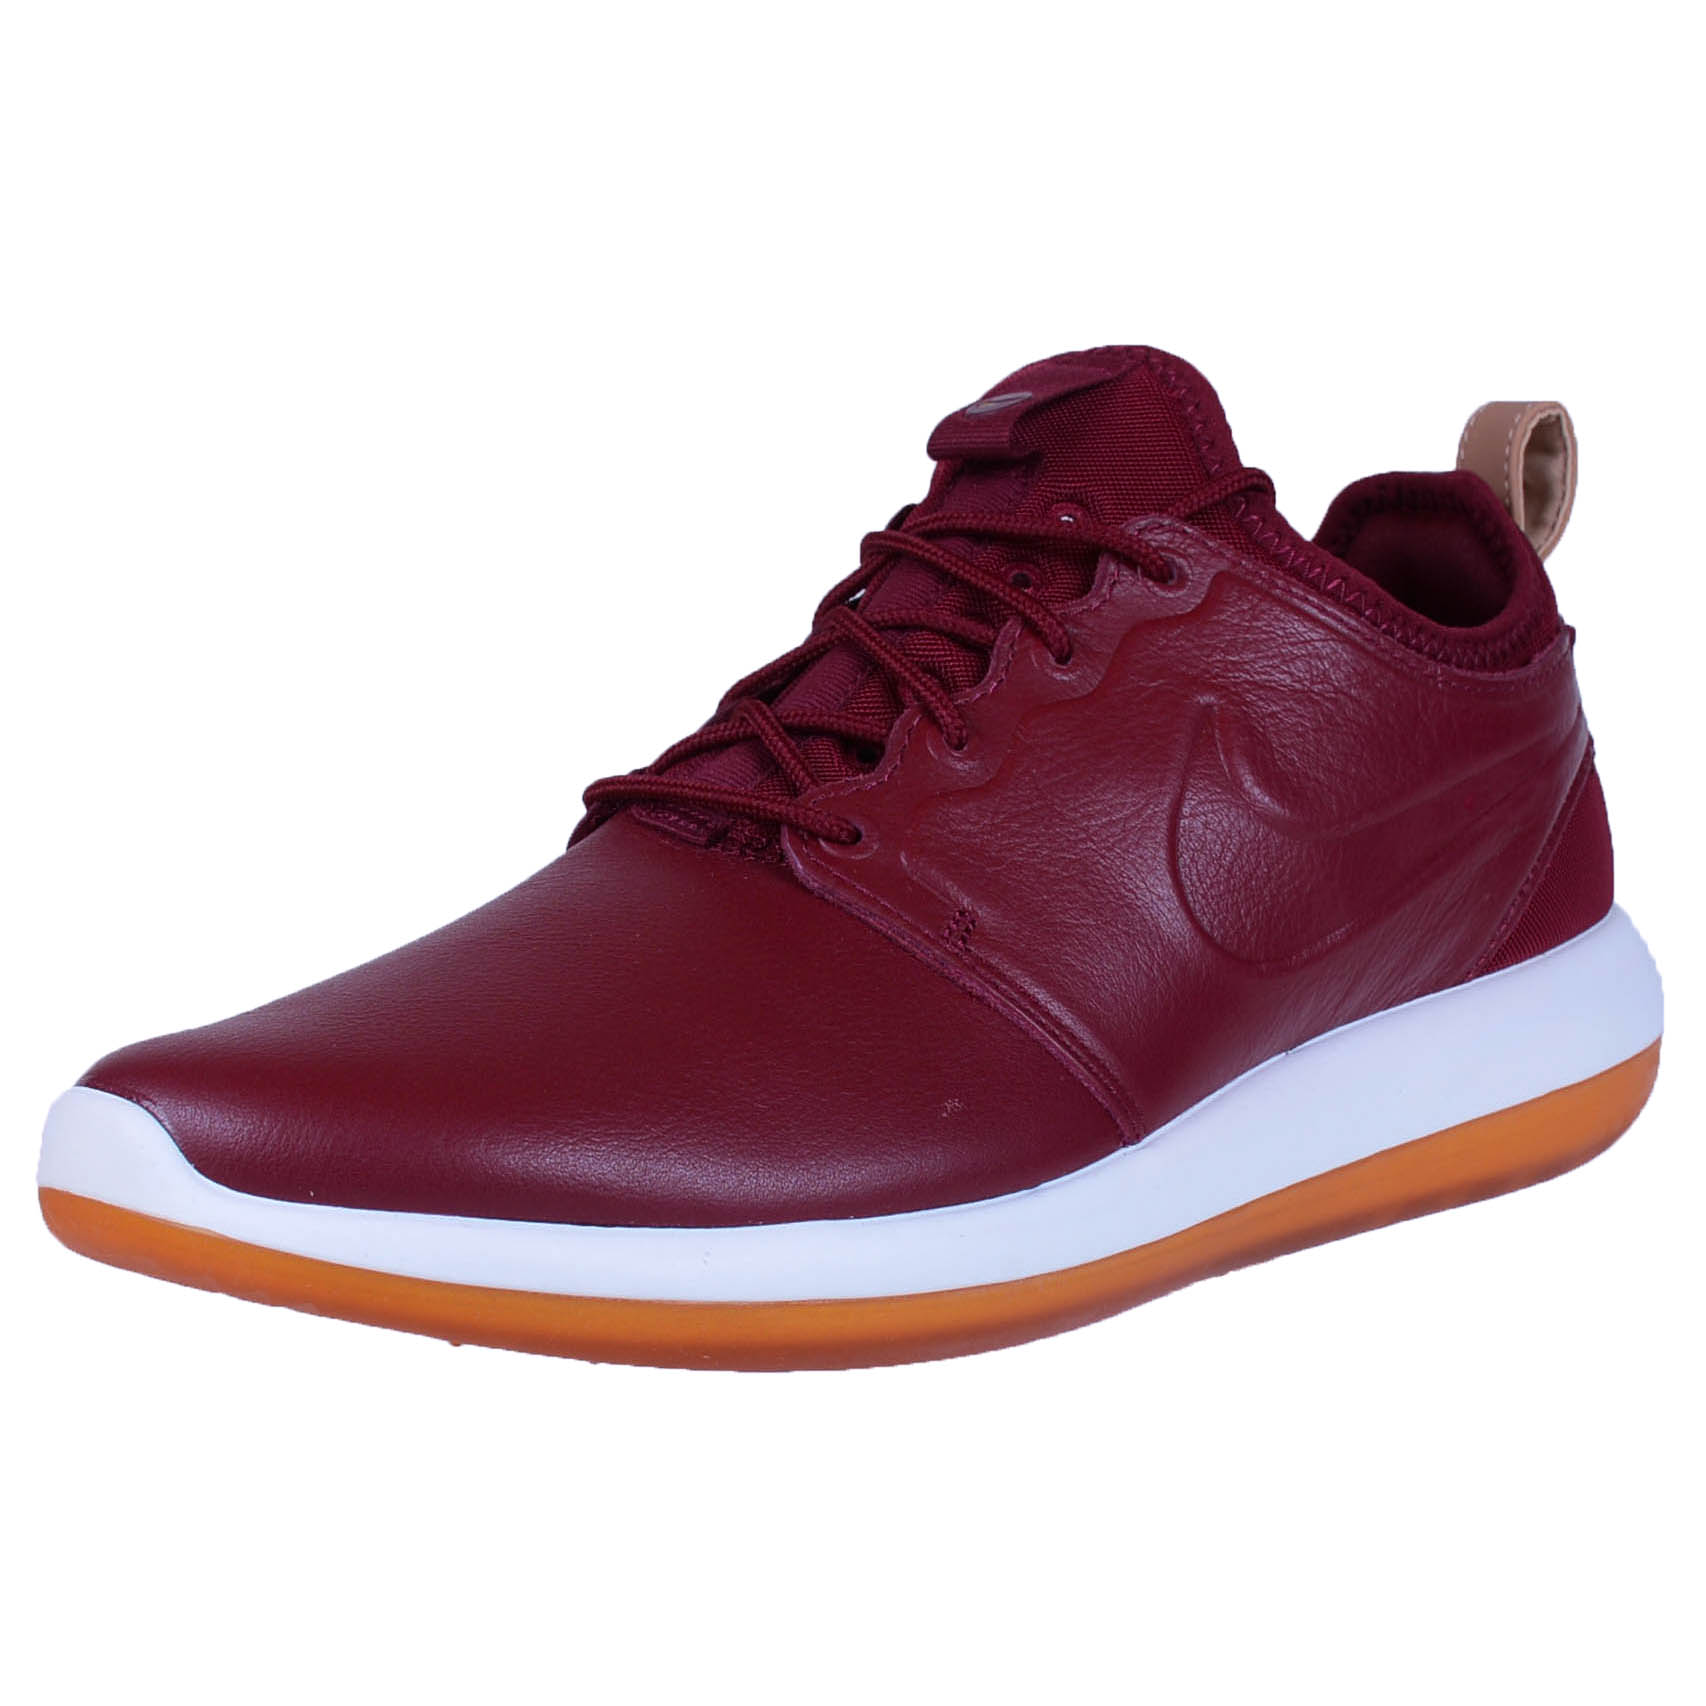 purchase cheap 89c26 36552 ... nike roshe two leather premium team red white mens fashion 881987 600